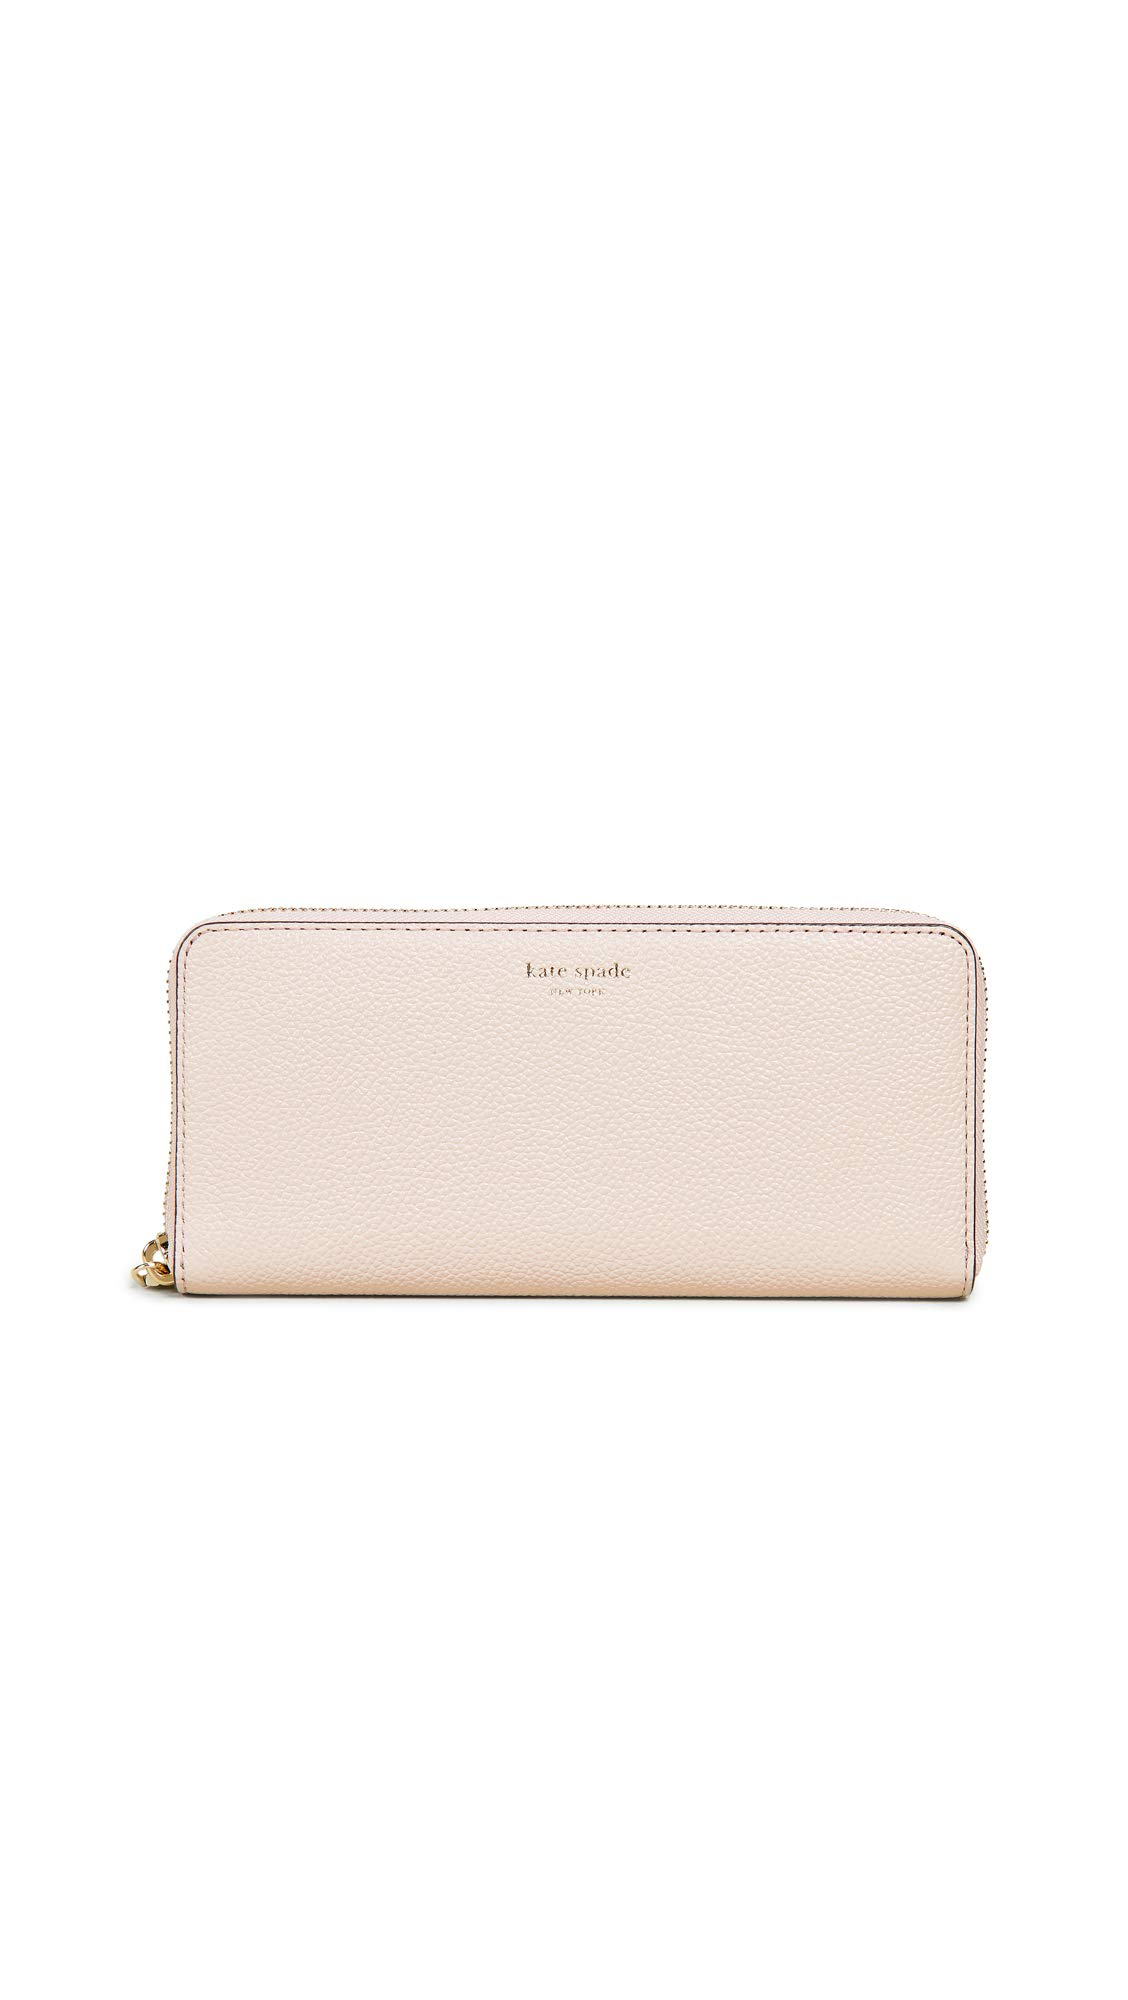 Kate Spade New York Women's Margaux Slim Continental Wallet, Pale Vellum, Pink, Off White, One Size